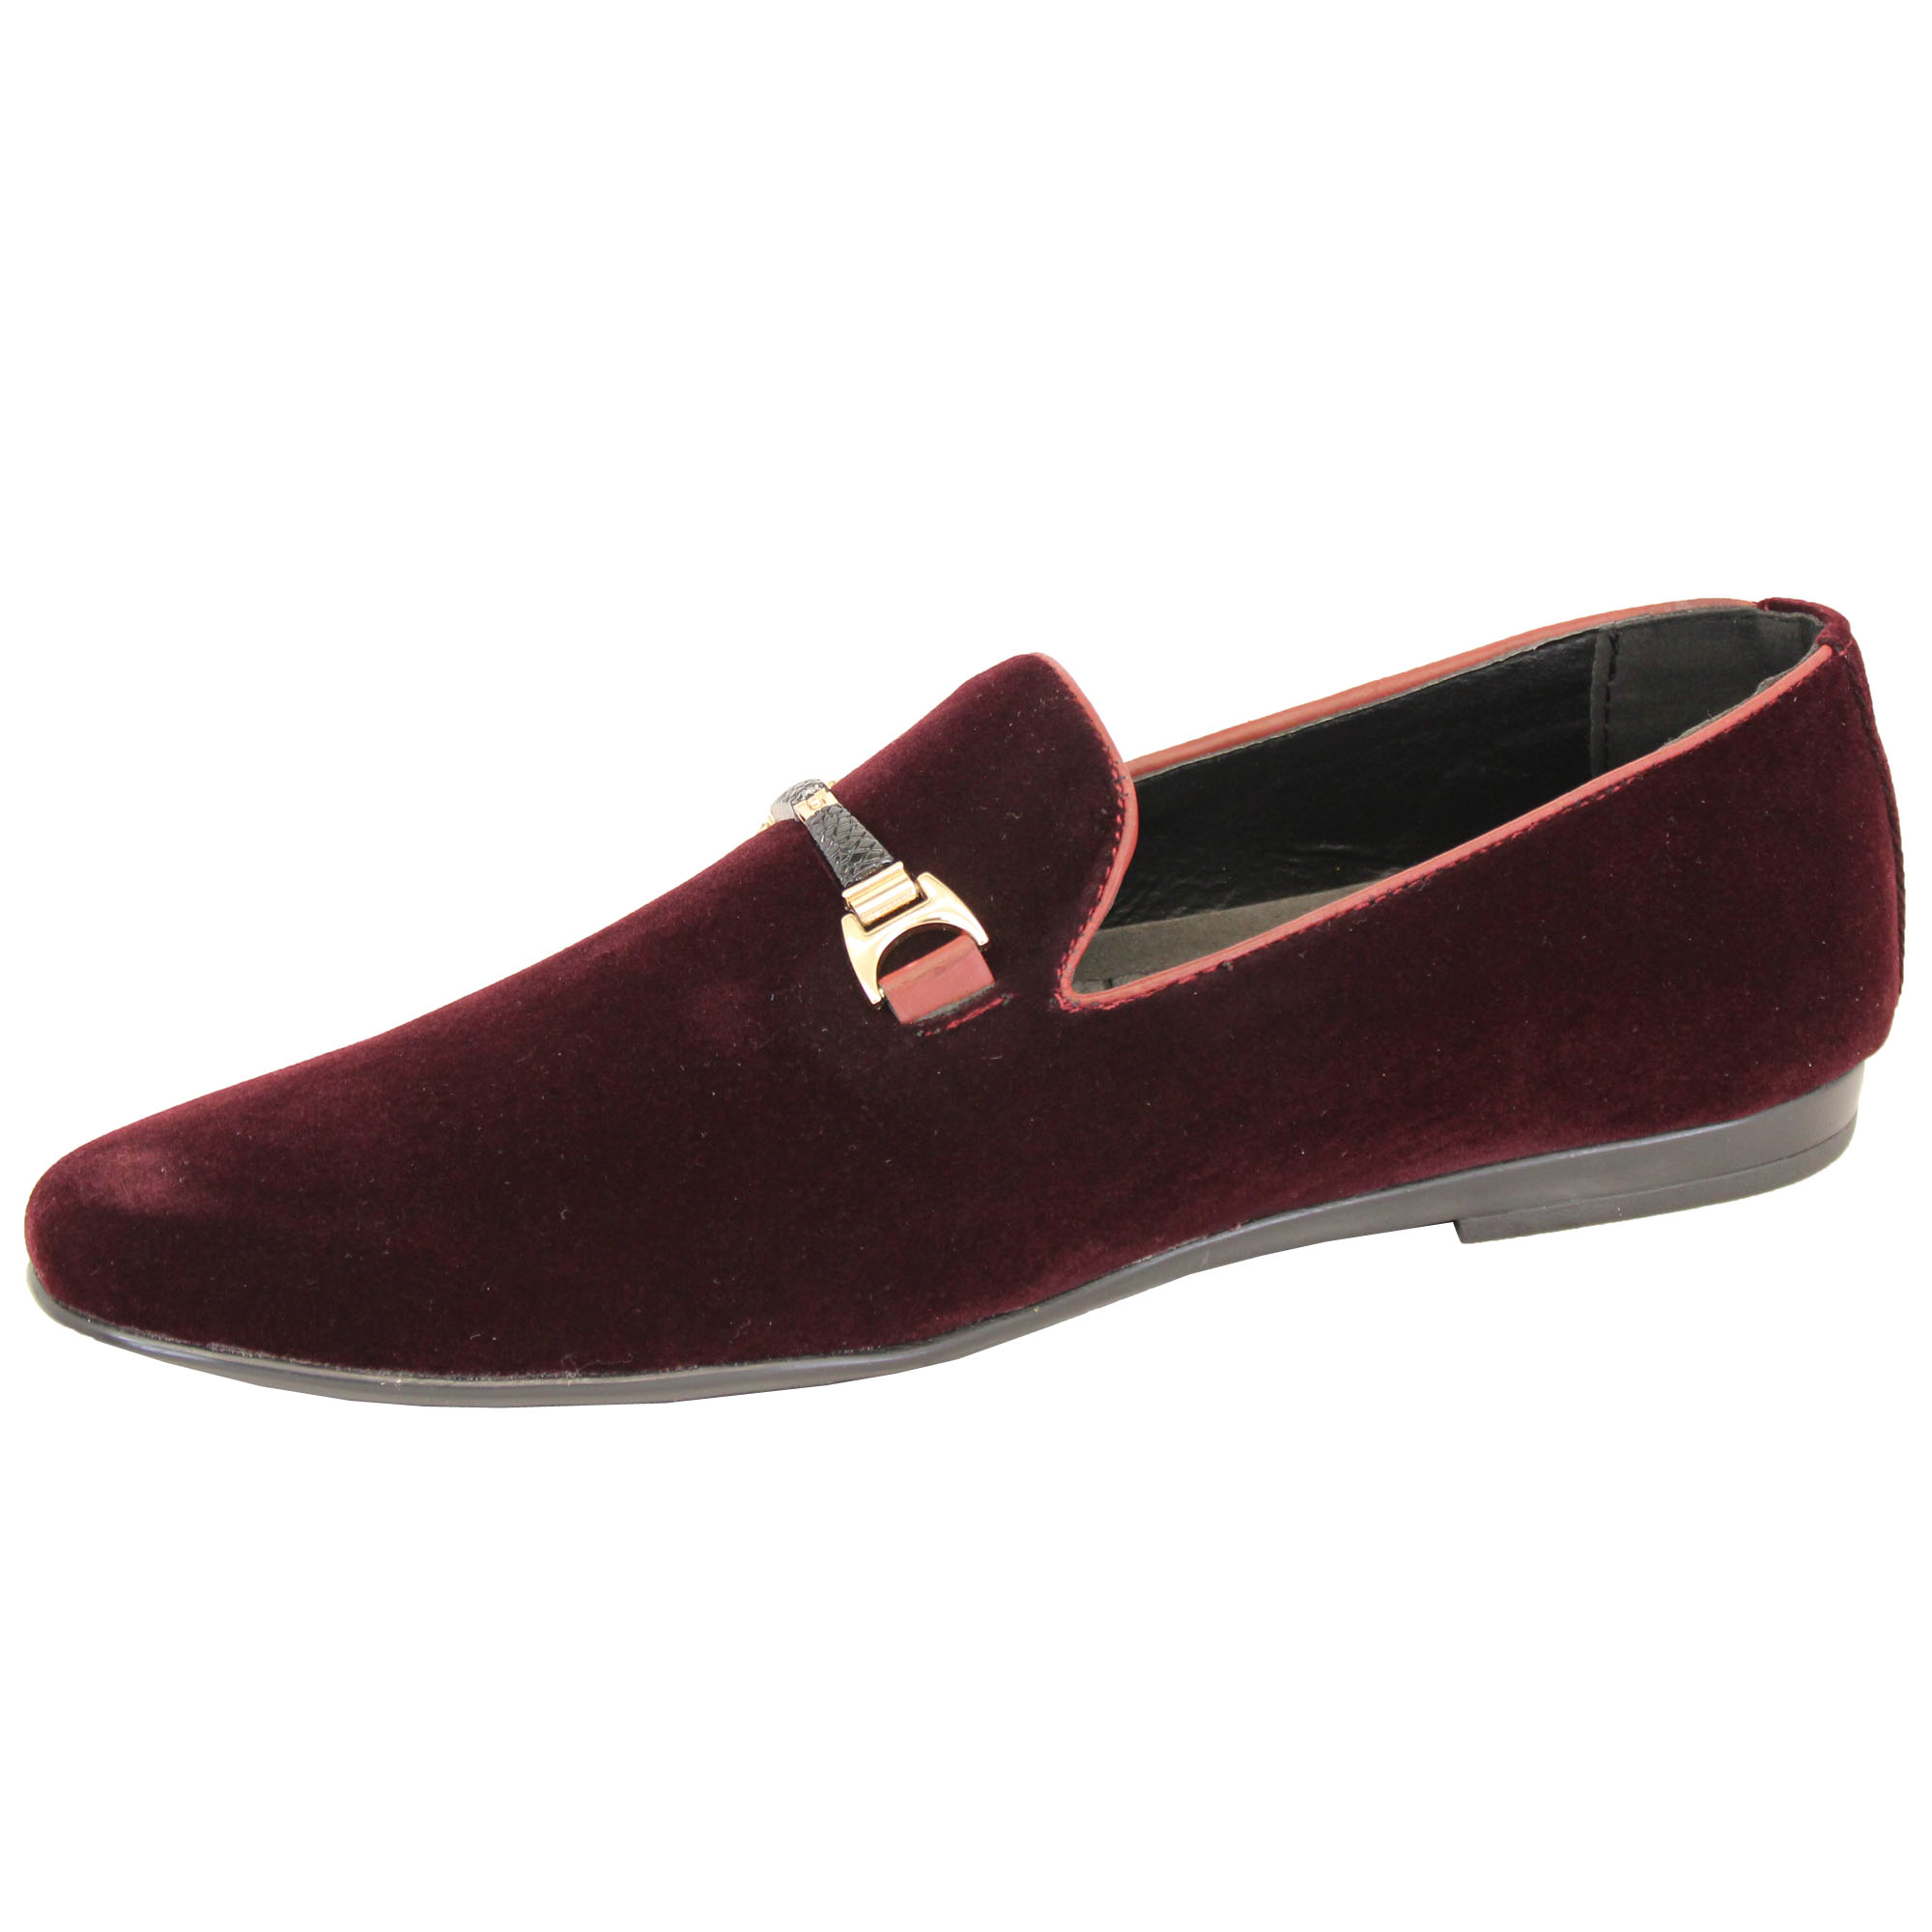 a08fa00484 Mens Slip On Italian Shoes Designer Loafers Suede Look Moccasin ...